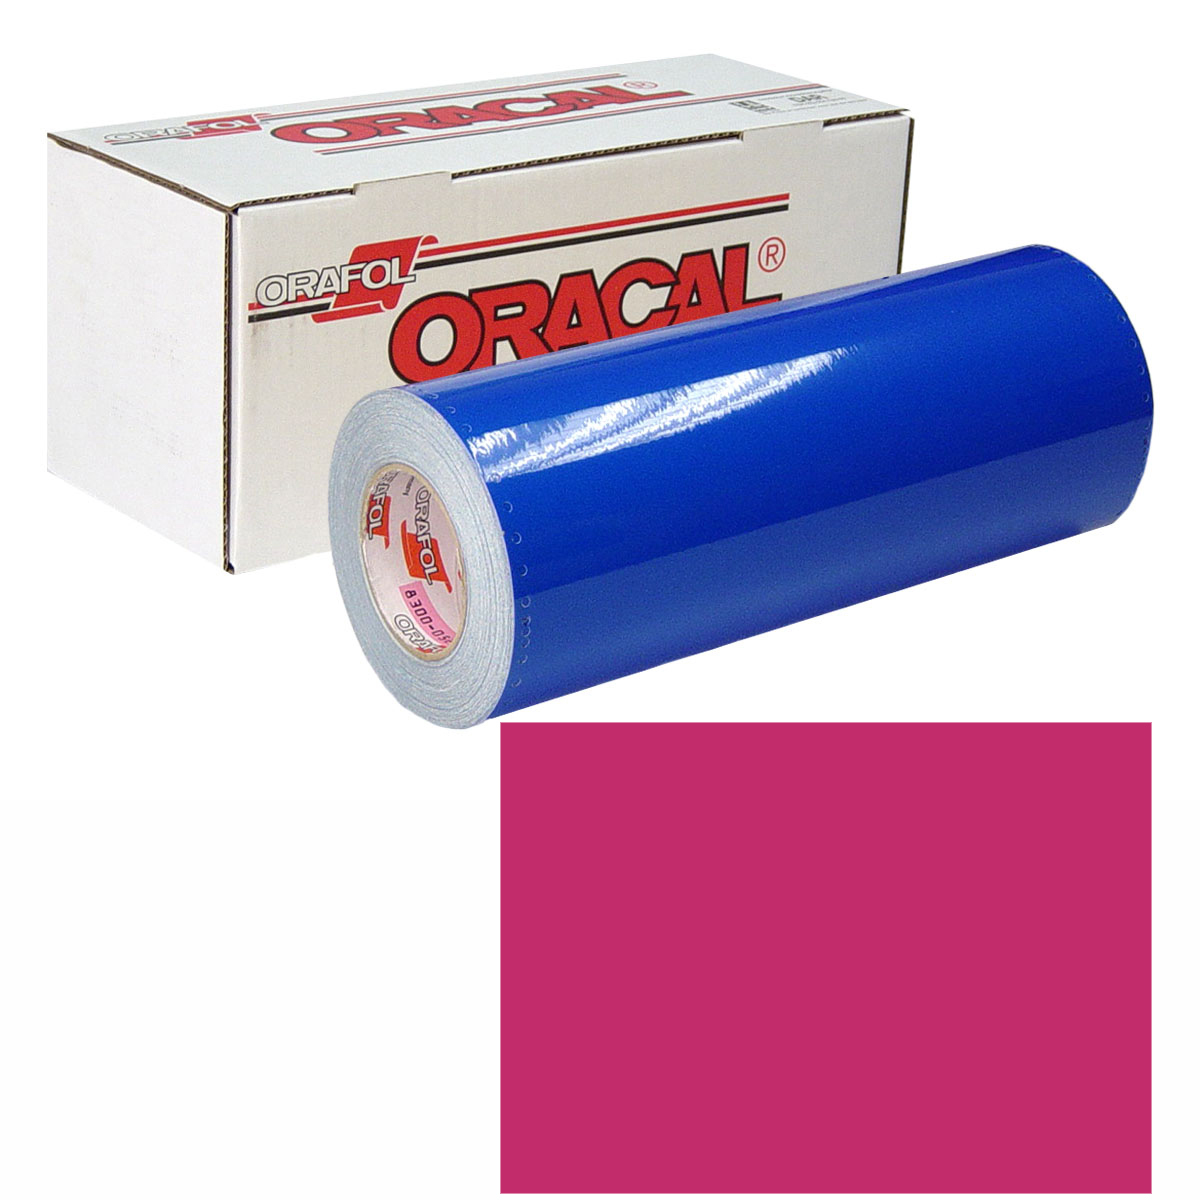 ORACAL 631 Unp 48In X 10Yd 041 Pink